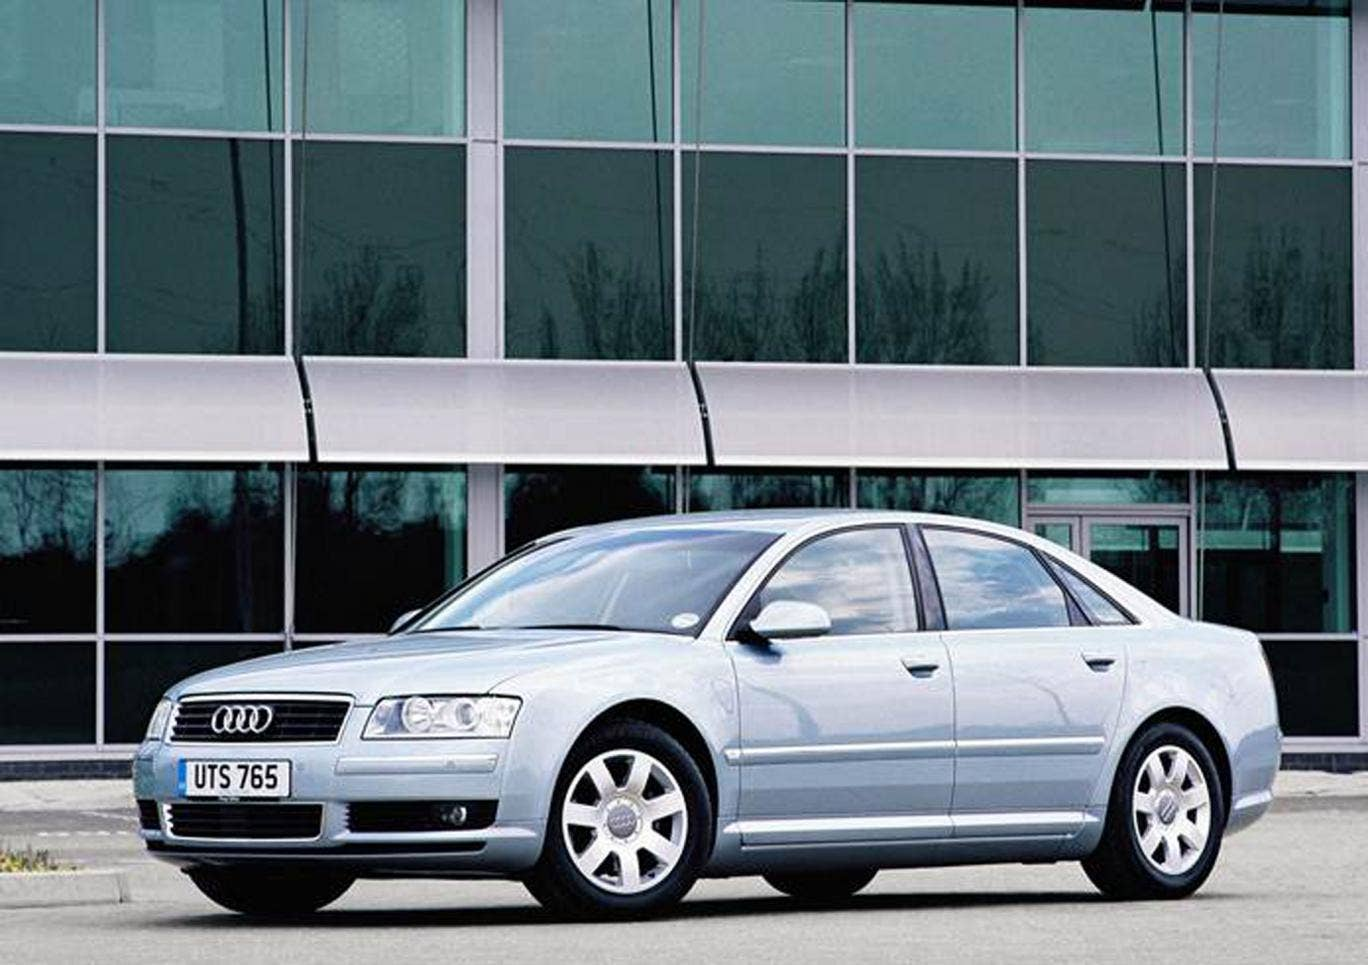 The Audi A8 is unofficially the third-best luxury German marque behind Mercedes and BMW